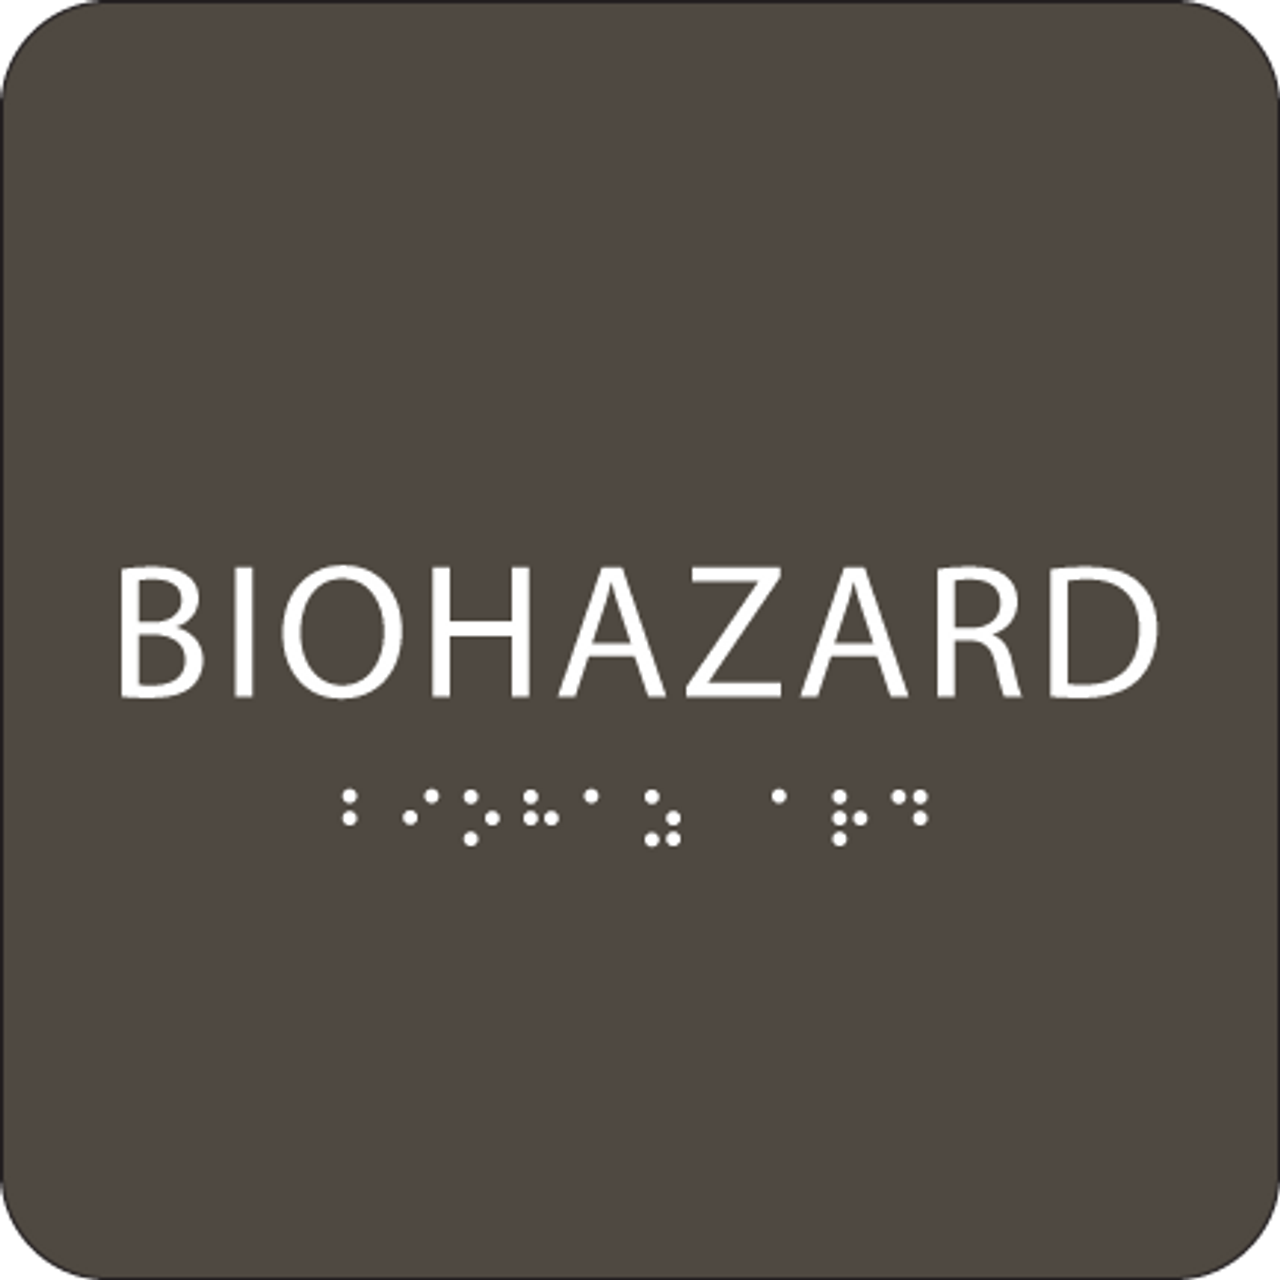 "Biohazard ADA Sign - 6"" x 6"""